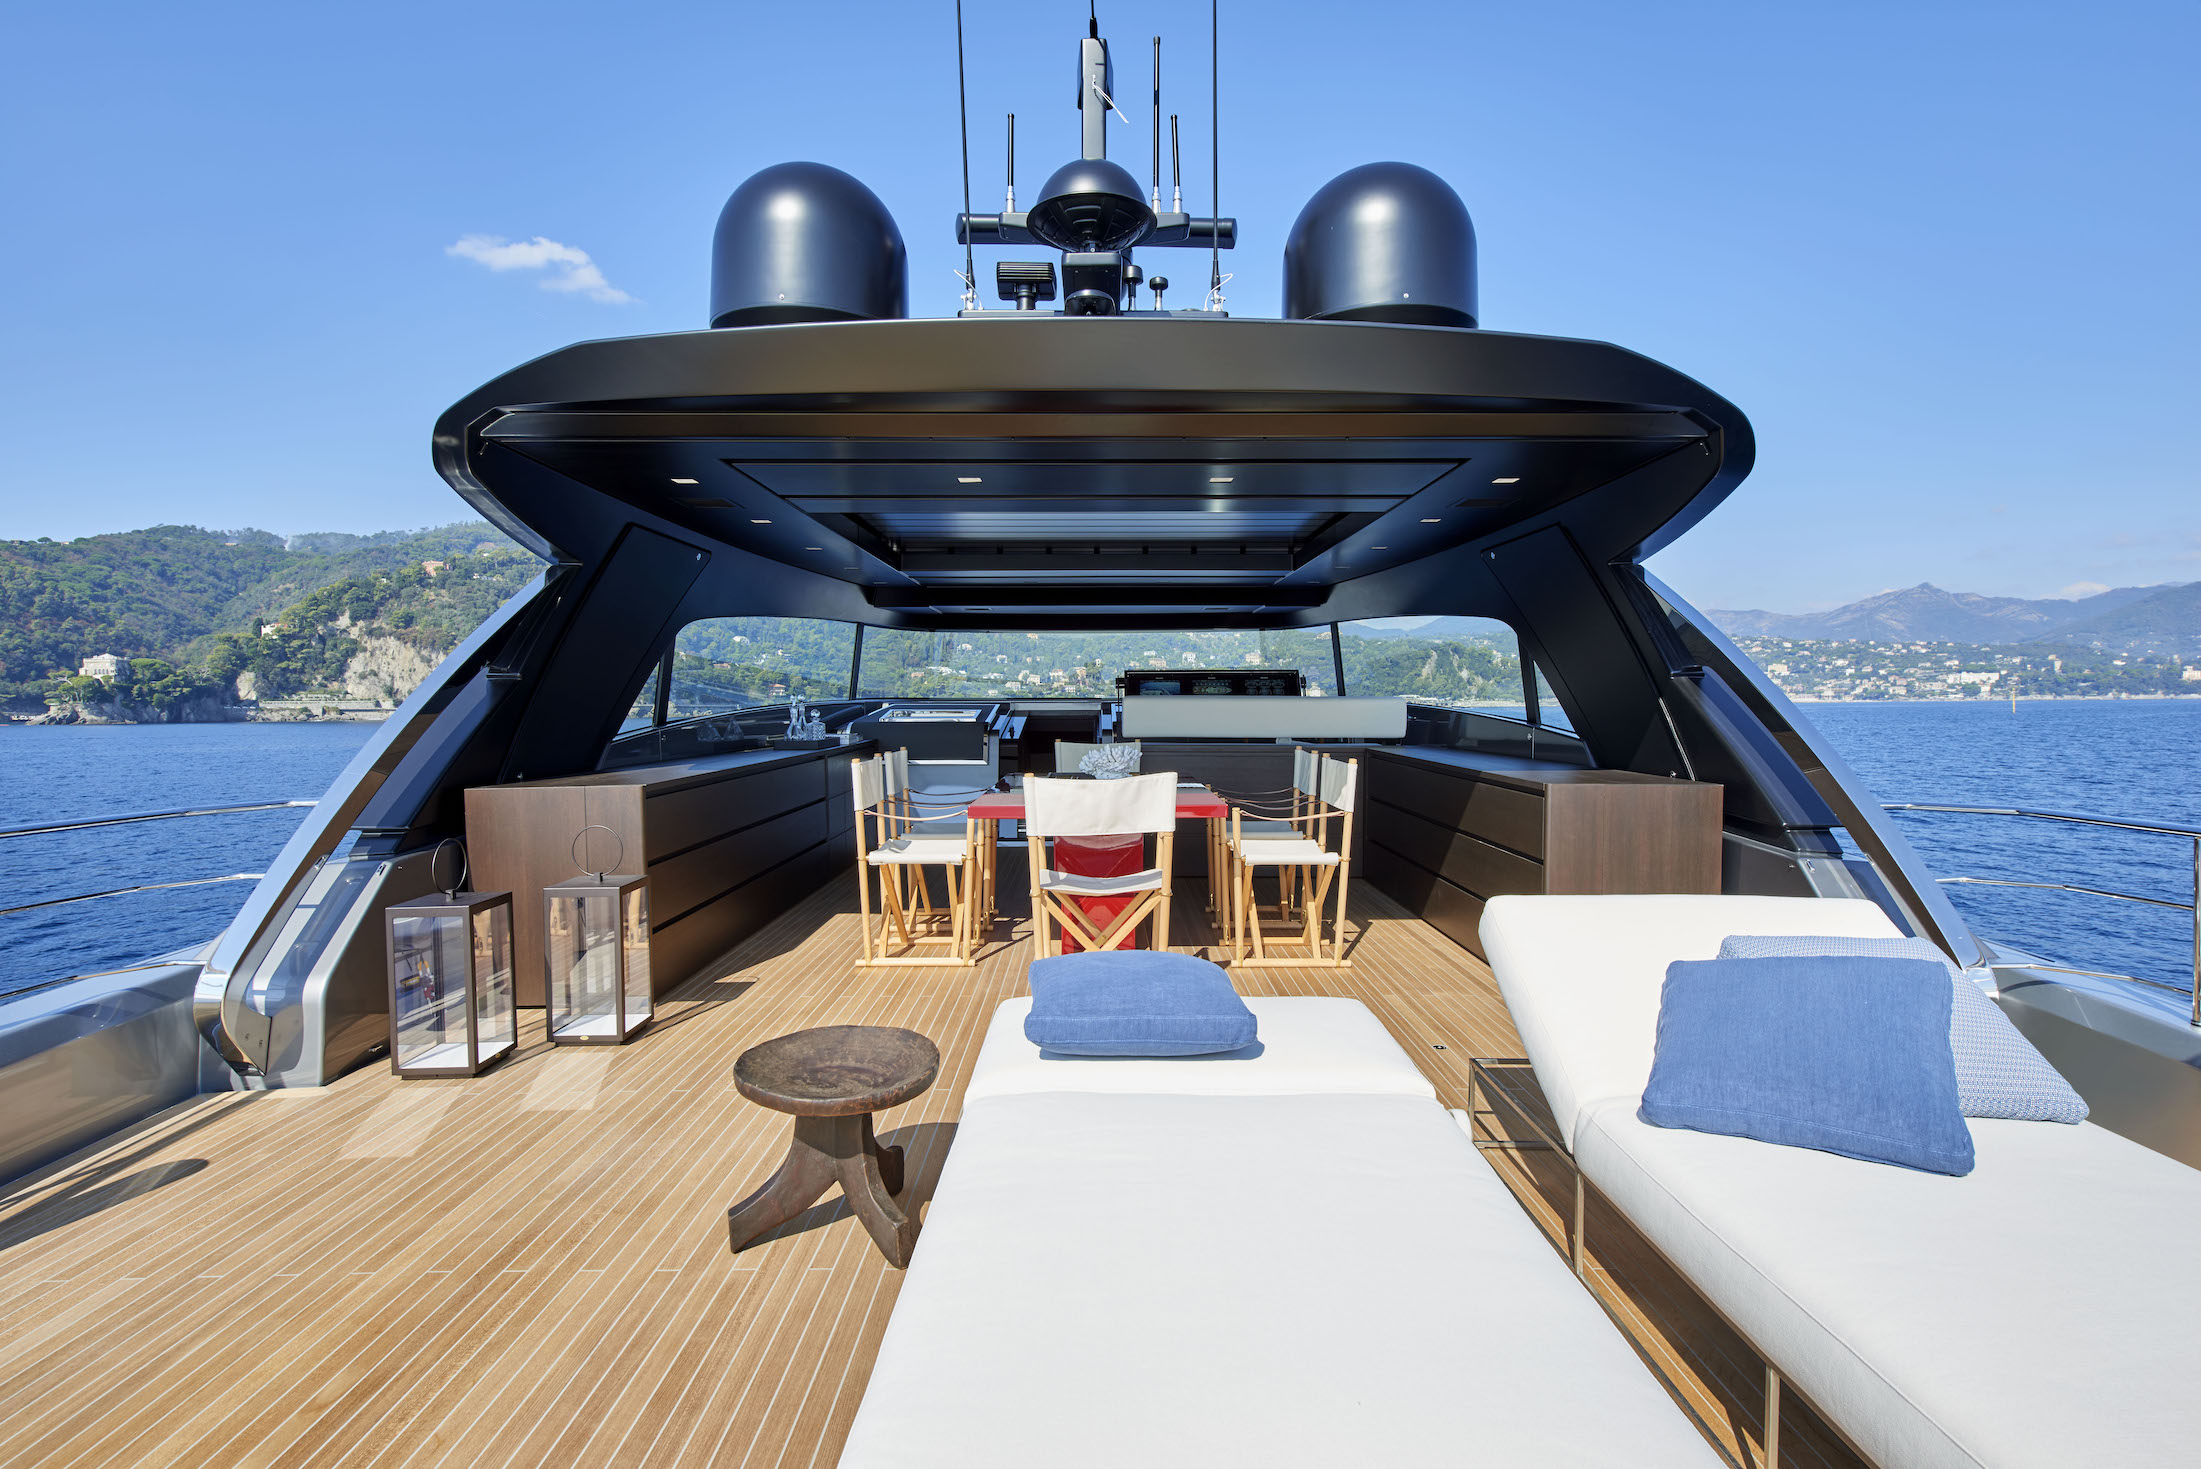 Sanlorenzo Yacht SX88-flying bridge-Photo Leo Torri PH Courtesy Sanlorenzo